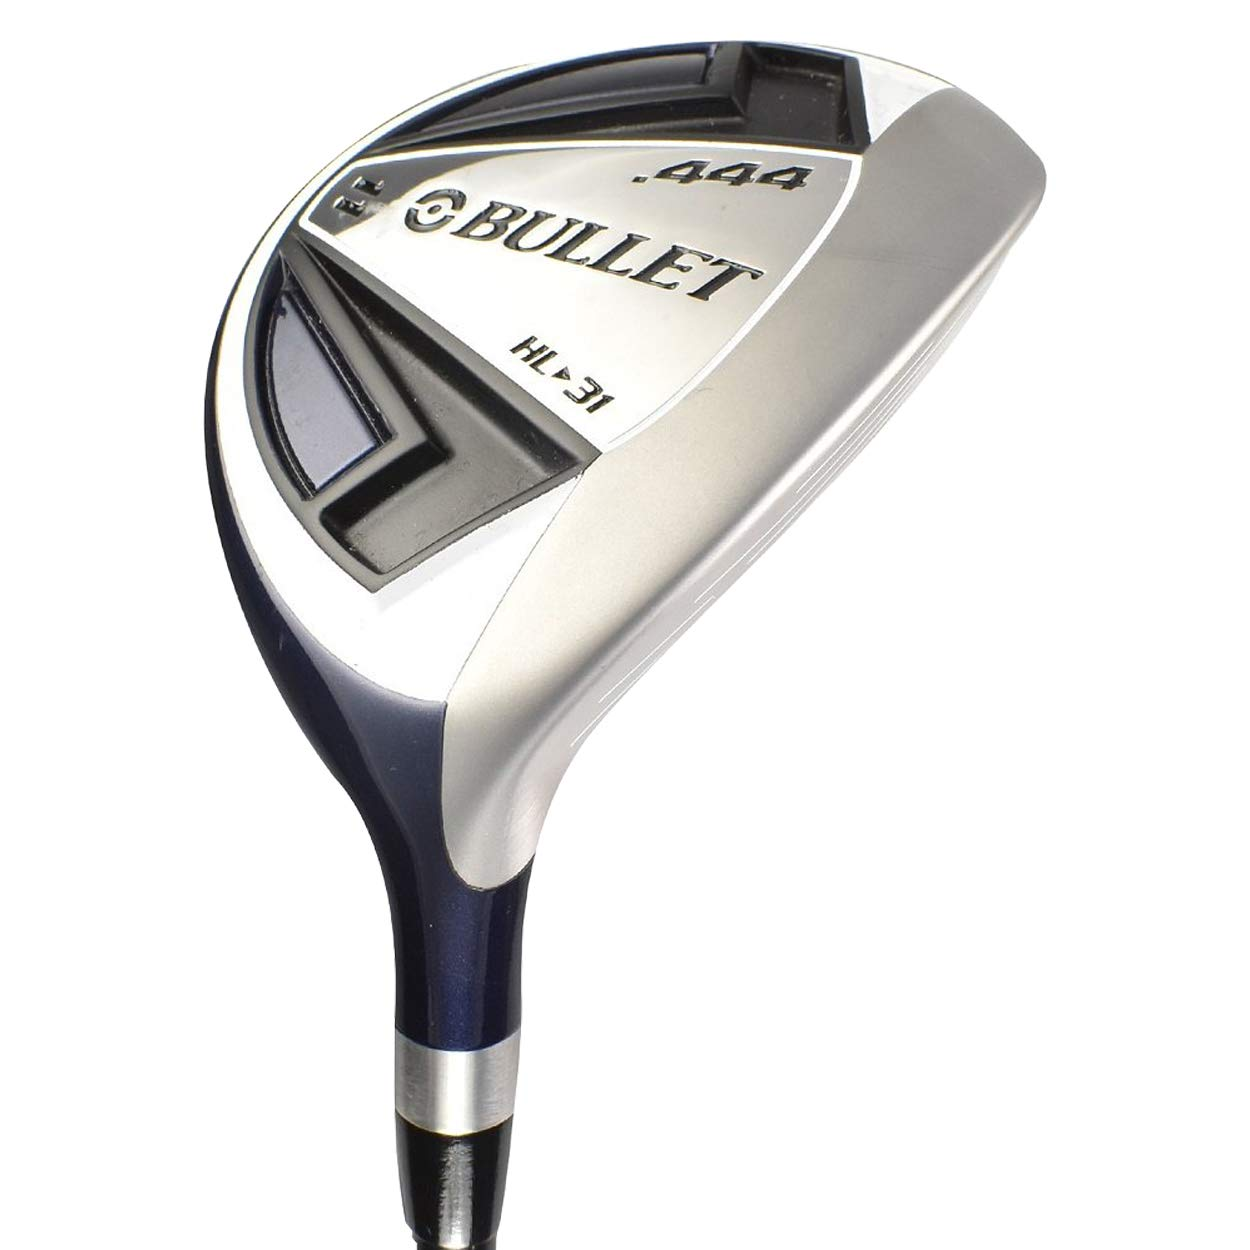 Amazon.com: Bala de golf - .444 Fairway Wood: Sports & Outdoors